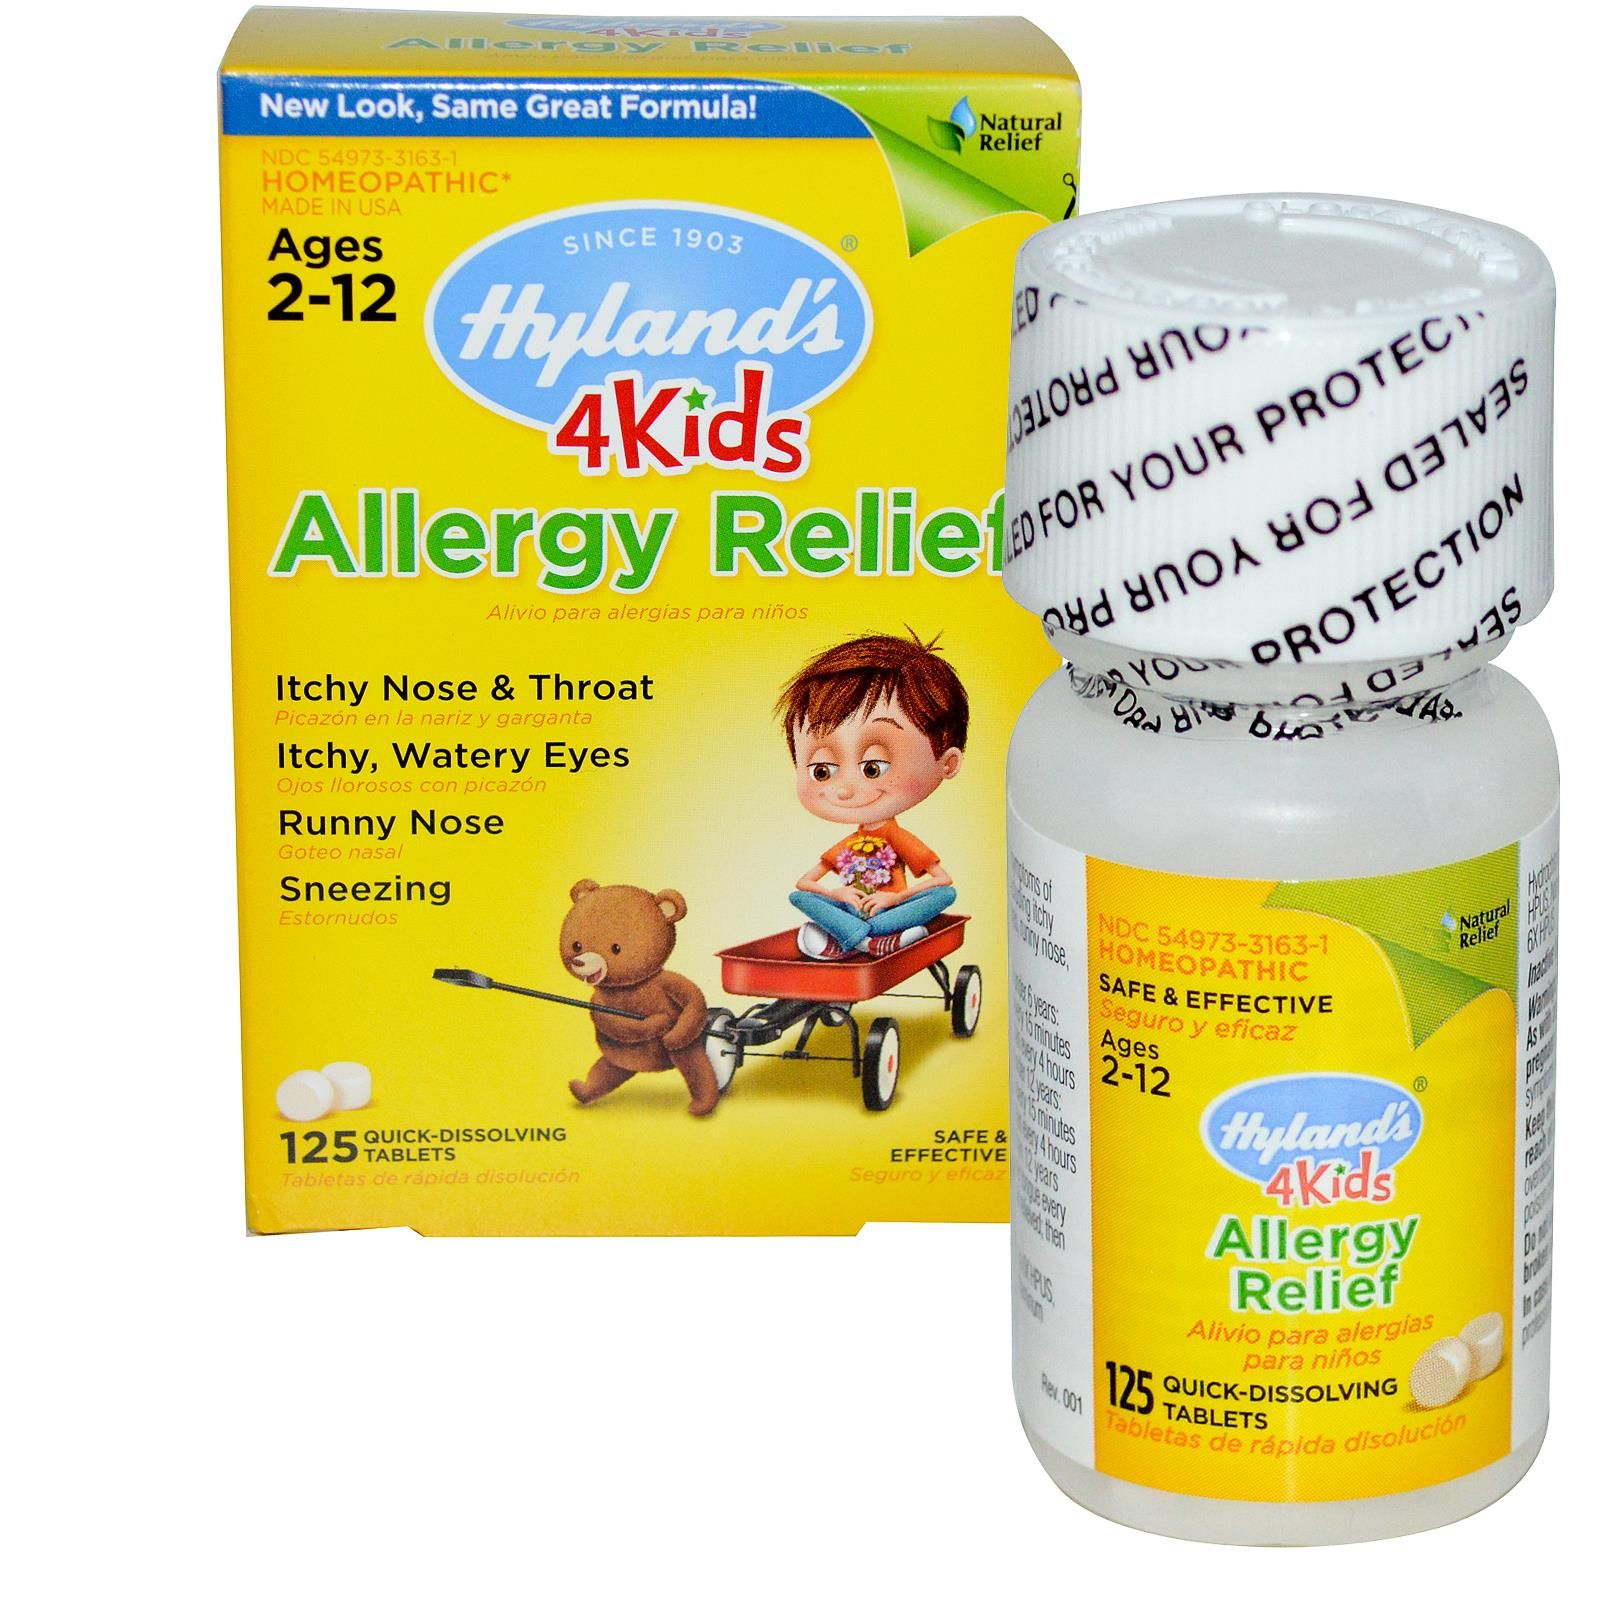 Hyland's, 4 Kids, Allergy Relief, Ages 2-12, 125 Quick-Dissolving